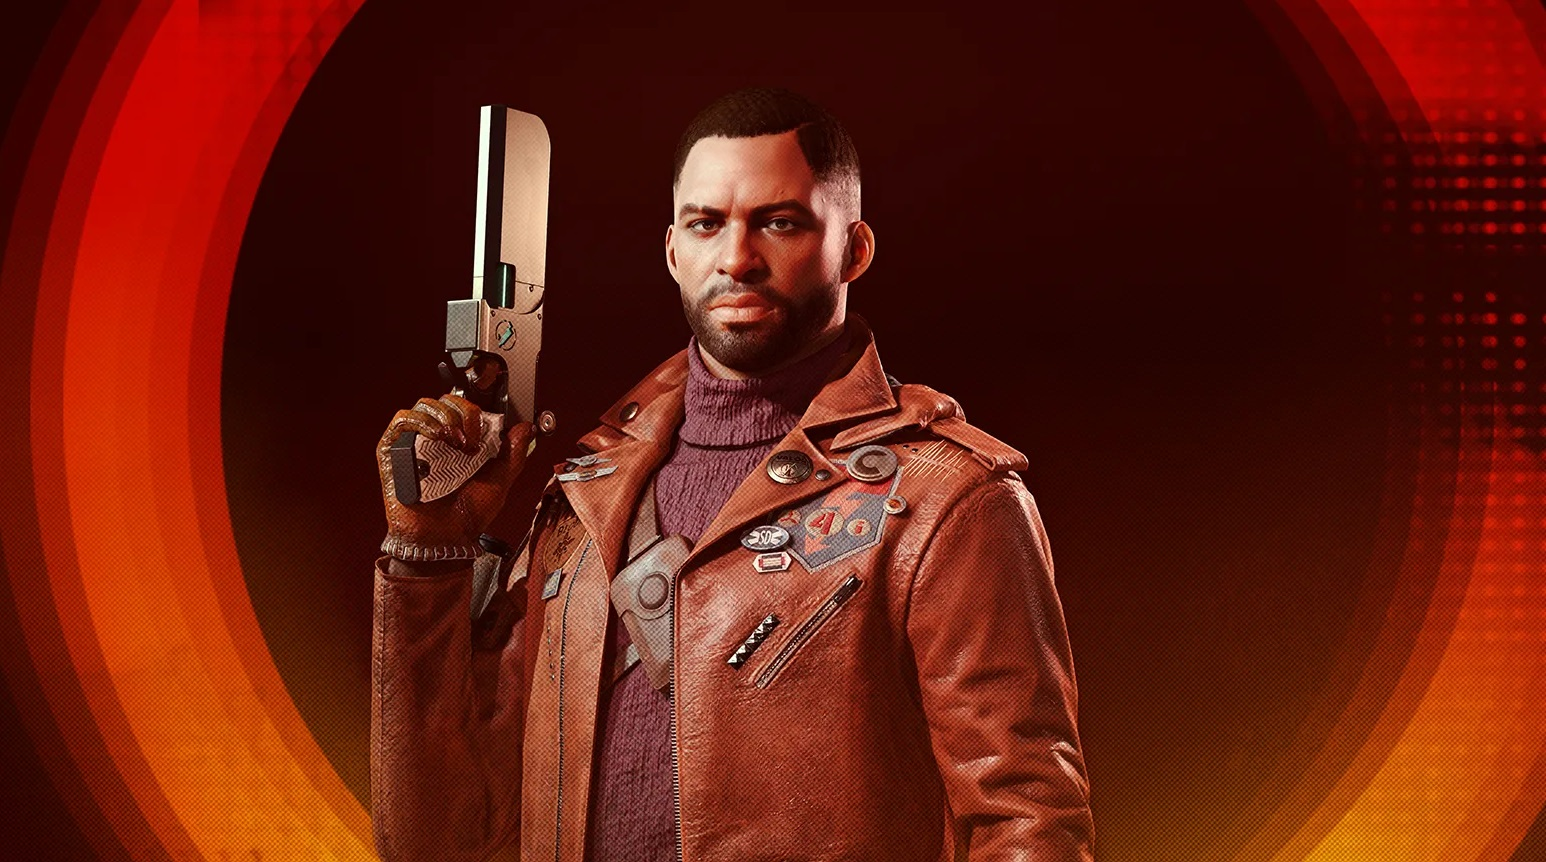 deathloop file size preload and unlock times ps5 pc